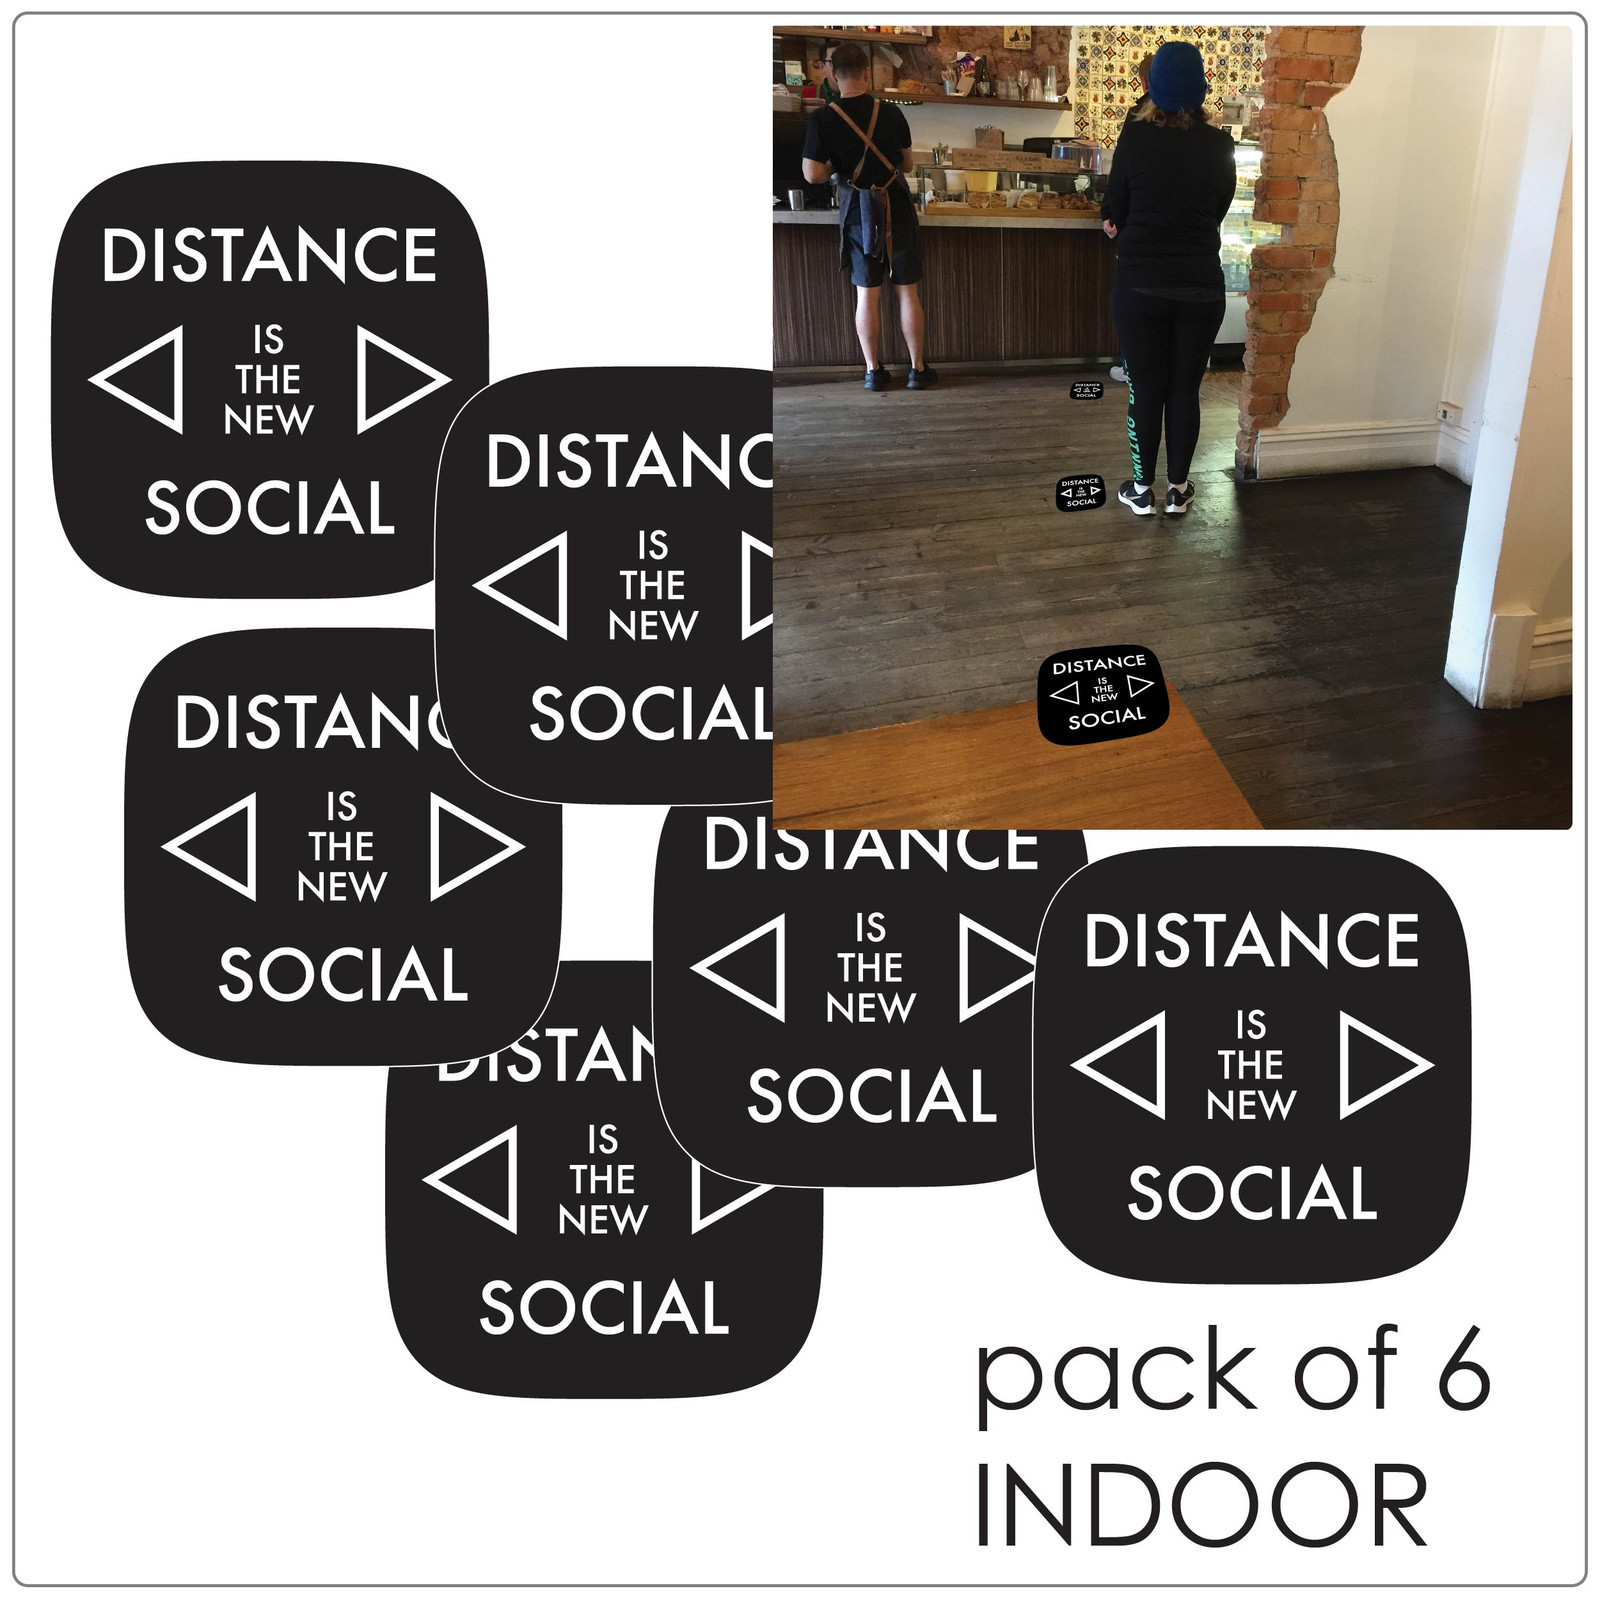 social distancing floor marker for hard floors, pack of 6, contemporary, black Self-adhesive Corona virus floor marker to help social distancing